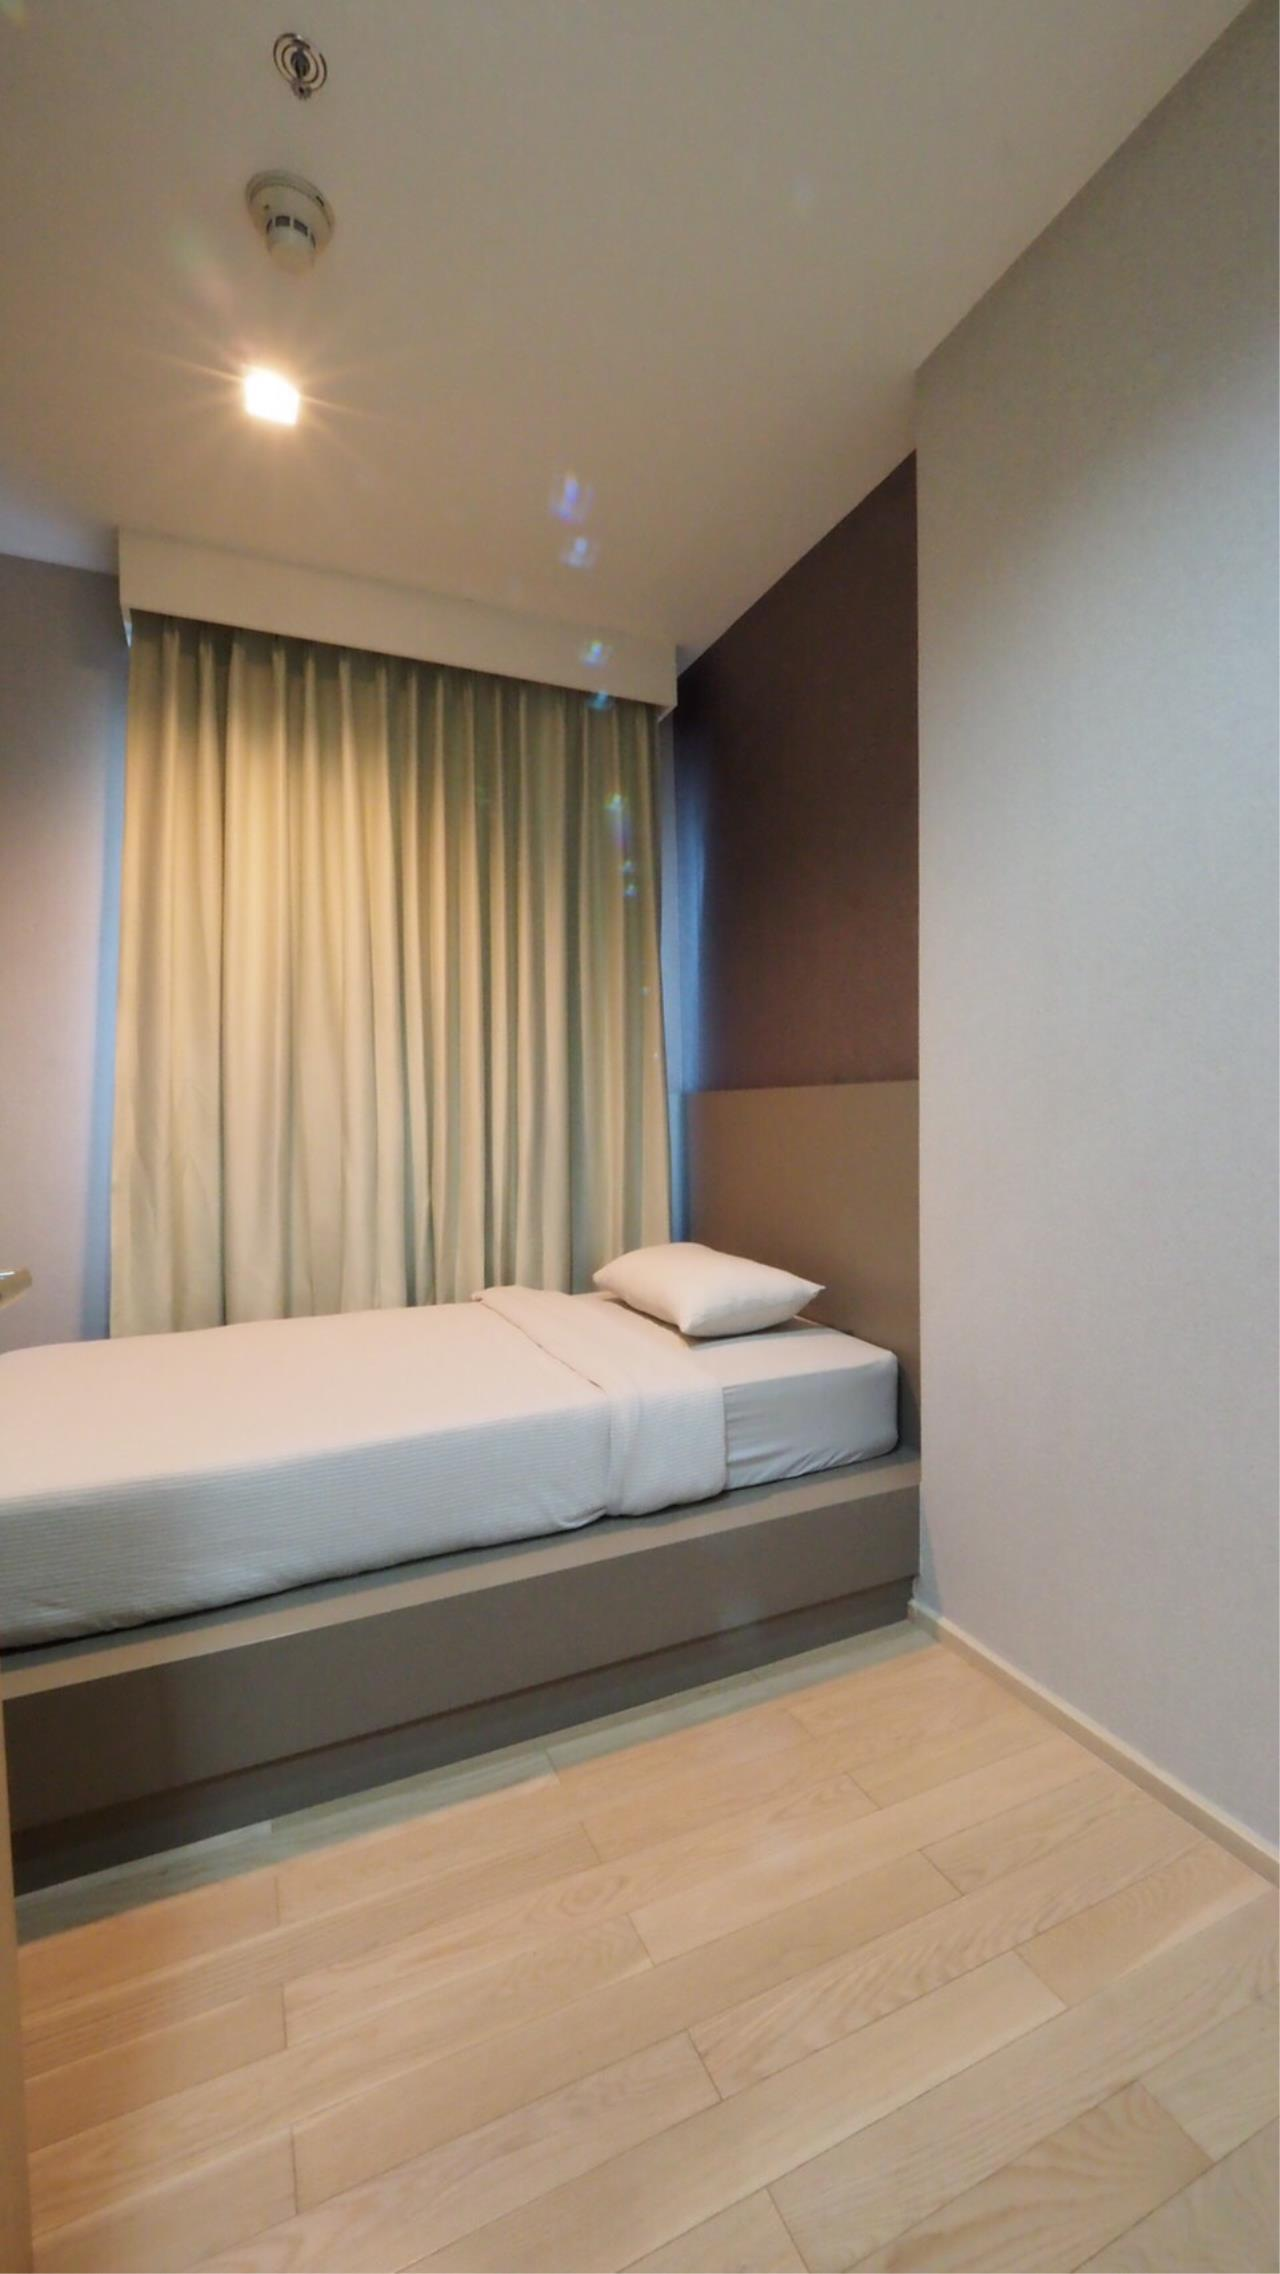 Siam Prop Agency's Siri at Sukhumvit 38 Condo for rent - Two Bedrooms 55,000 Bht per month     10